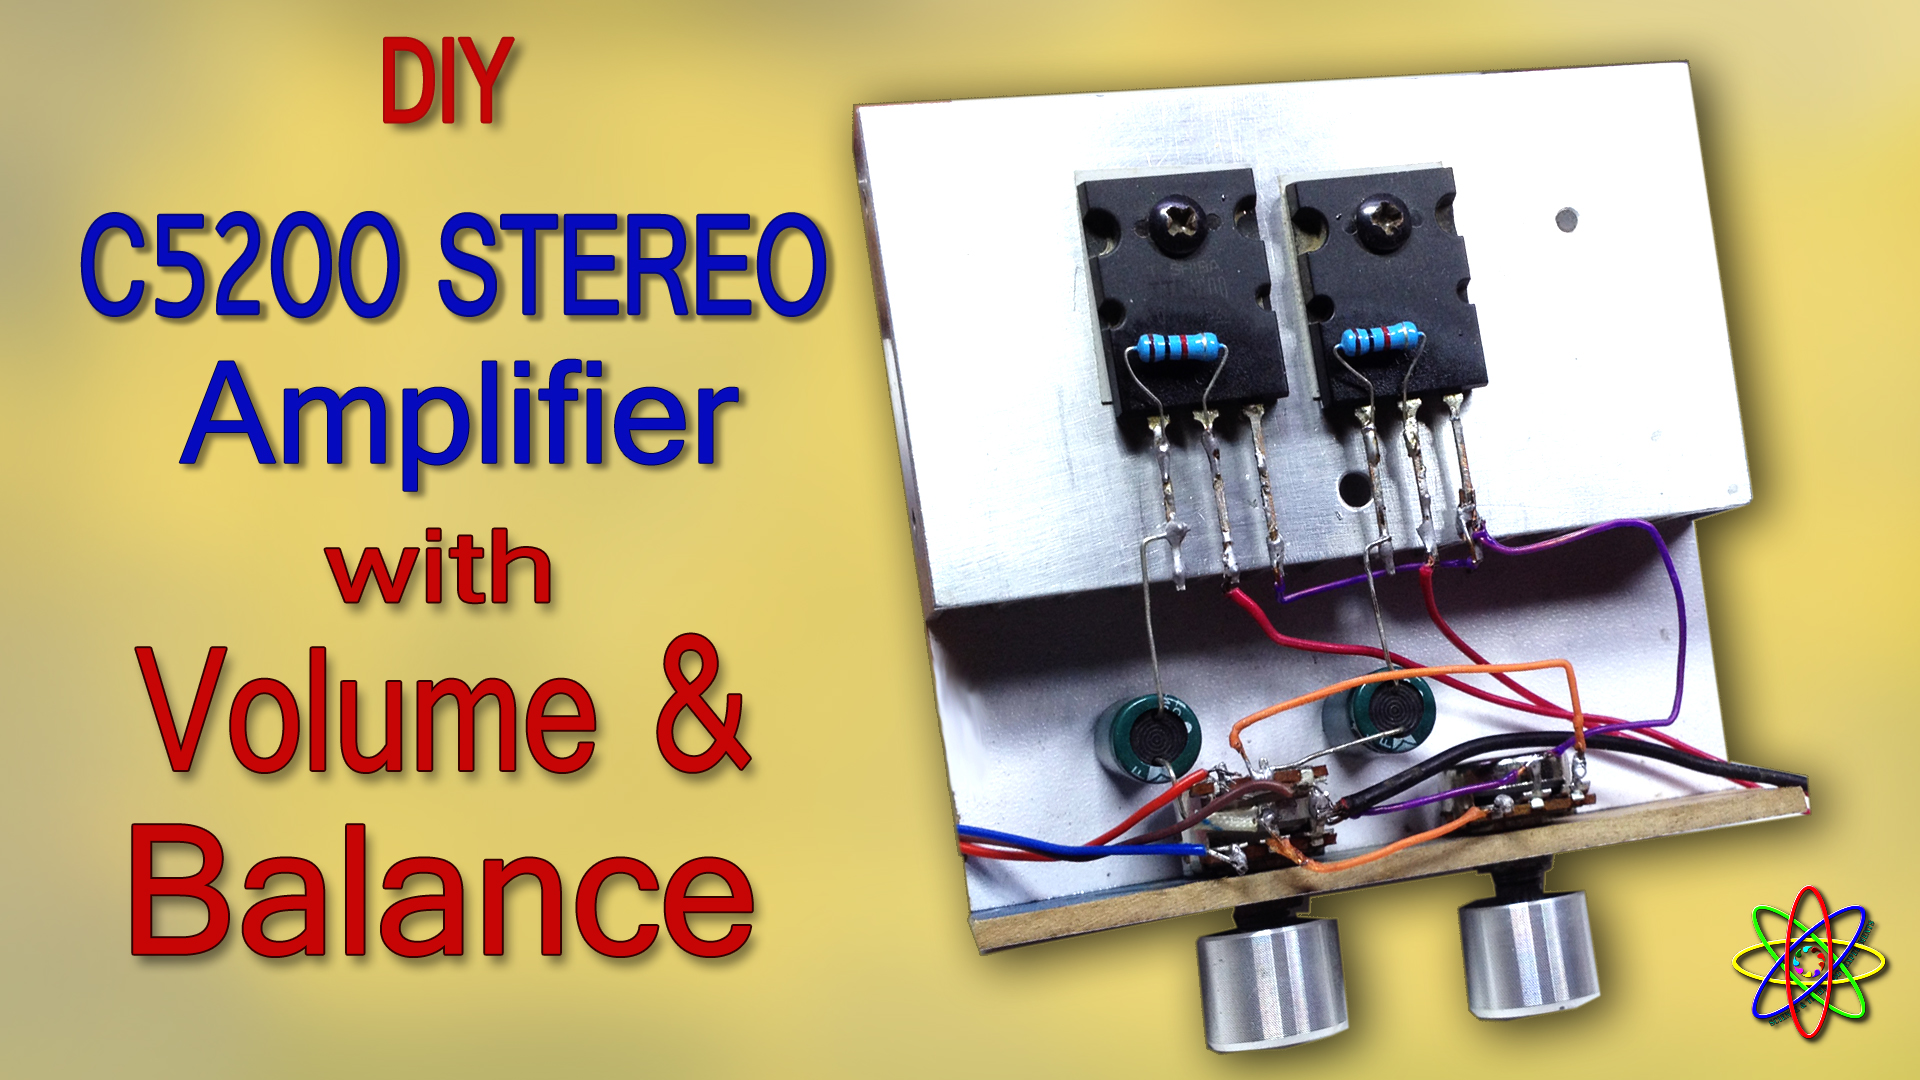 DIY C5200 stereo amplifier with volume balance